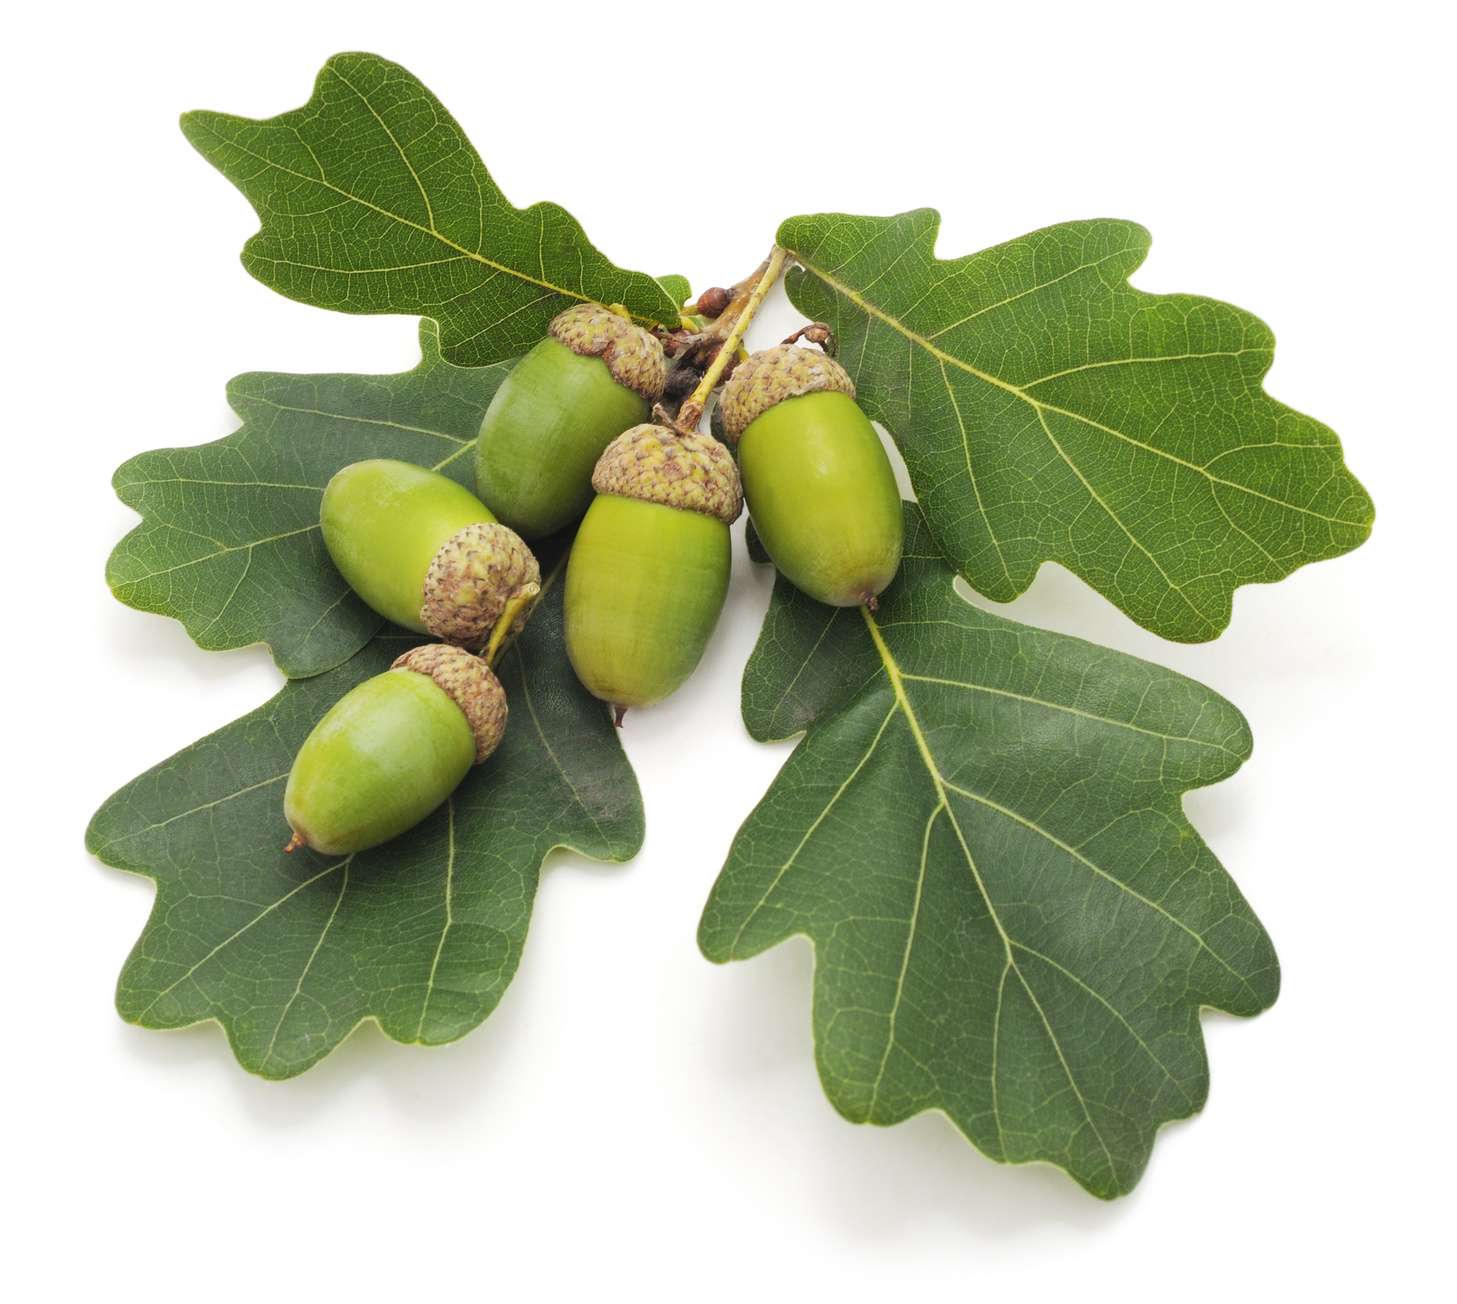 Green acorns isolated on a white background.